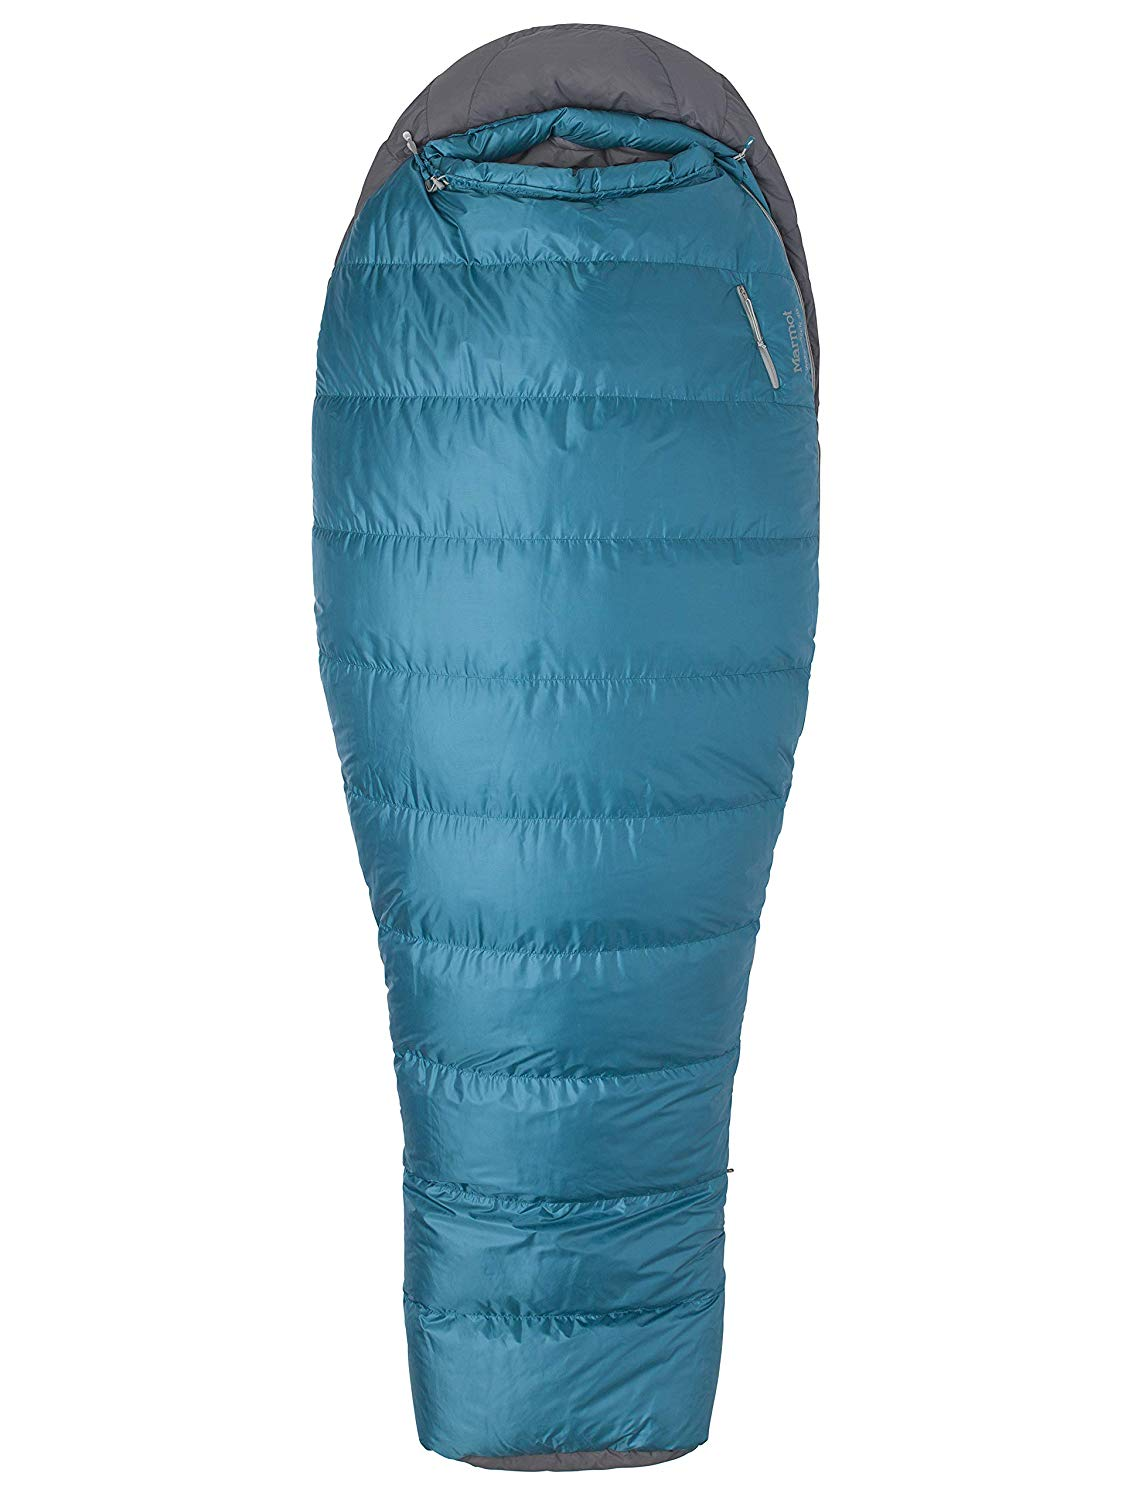 An image of Marmot Lozen 30 900929-4931 Women's 30 Degree Sleeping Bag